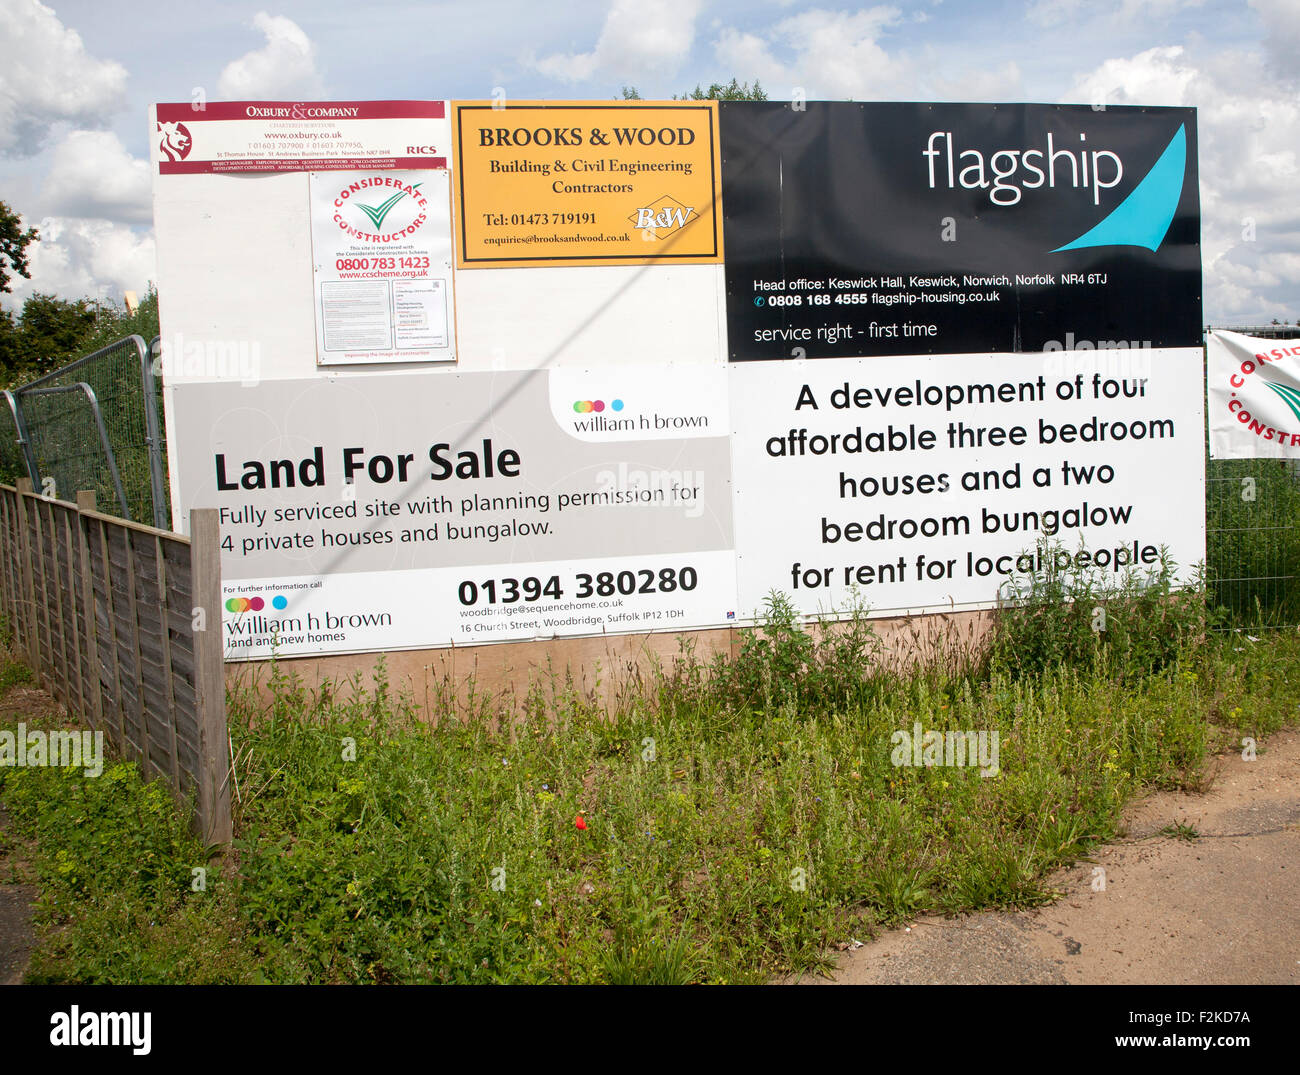 Sign for Flagship new affordable housing being constructed, Sutton, Suffolk, England, UK - Stock Image